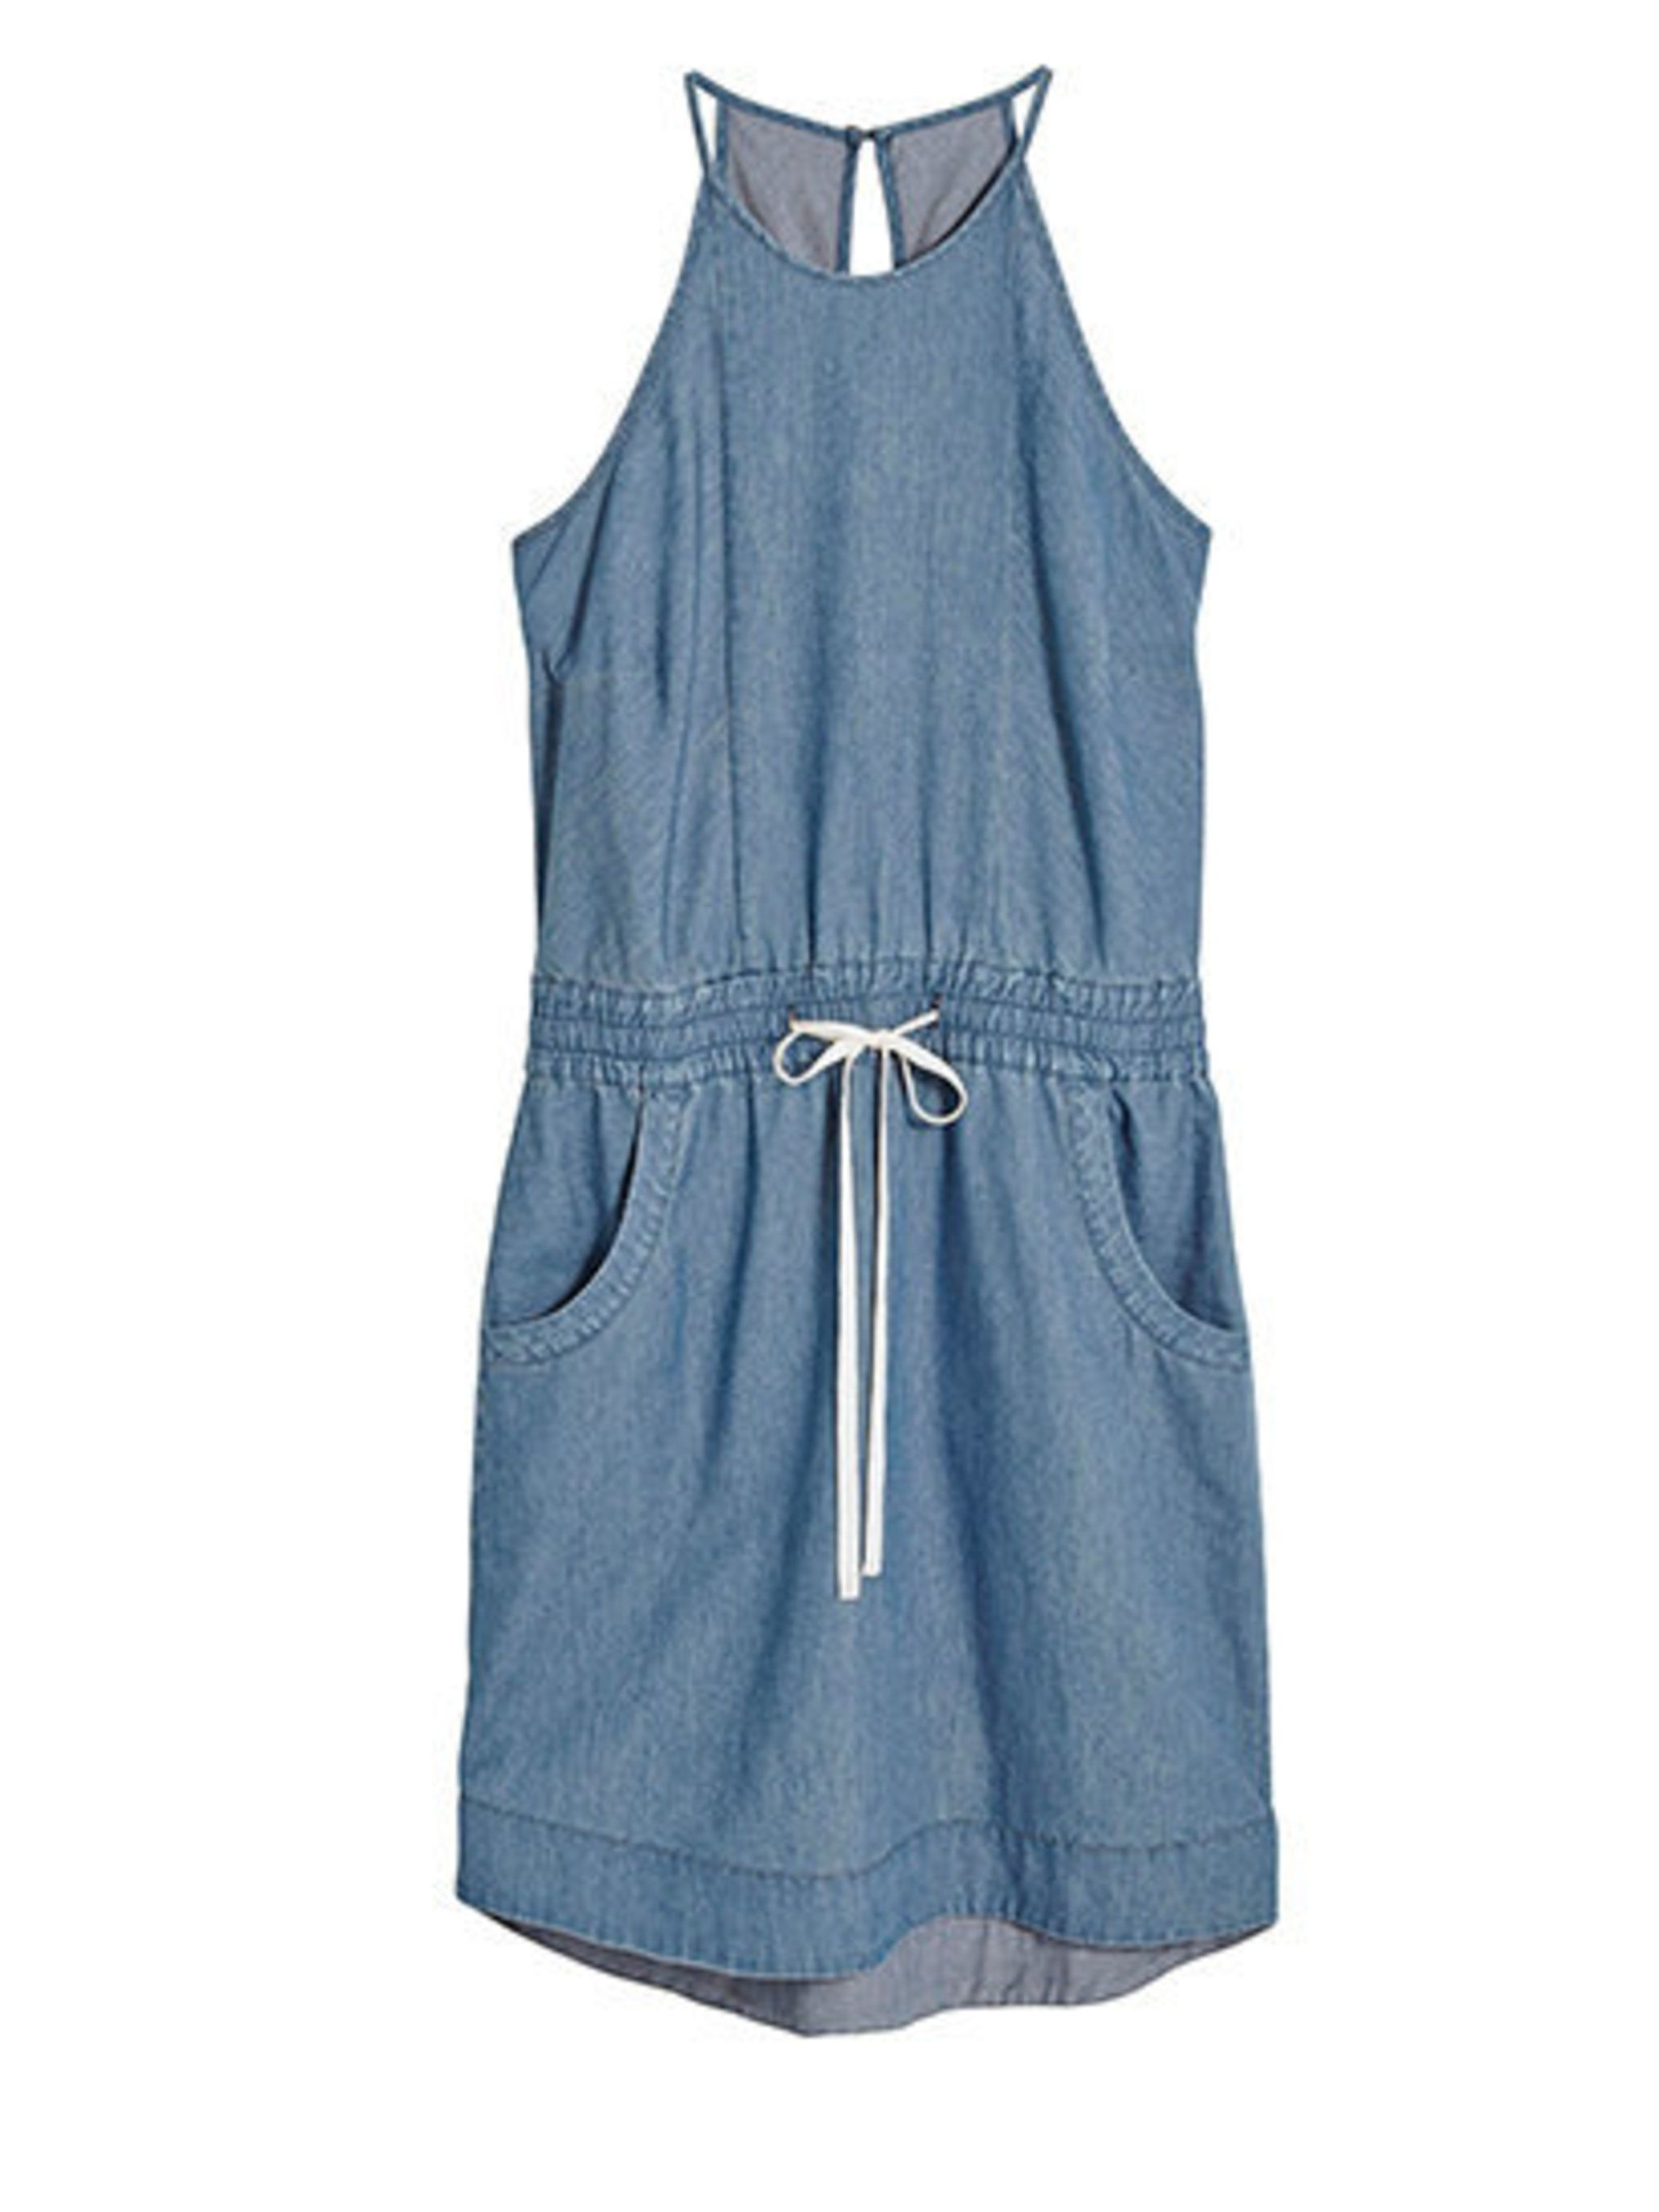 "<p>Racer denim dress, £32 from <a href=""http://www.next.co.uk/g6344s7"">Next</a>. </p>"